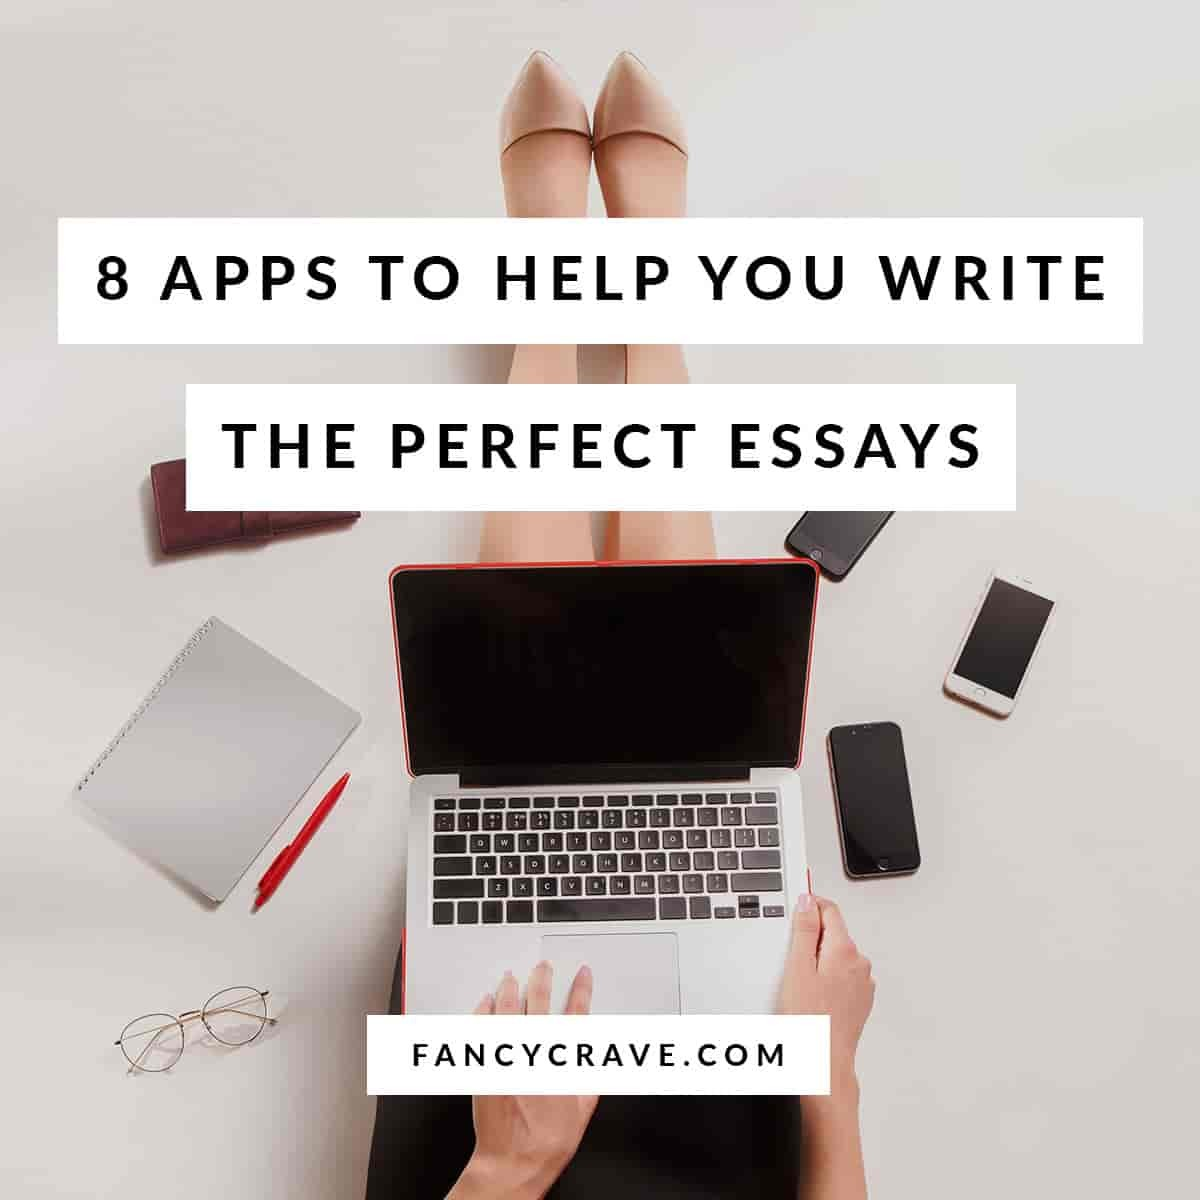 Apps to Help You Write The Perfect Essays